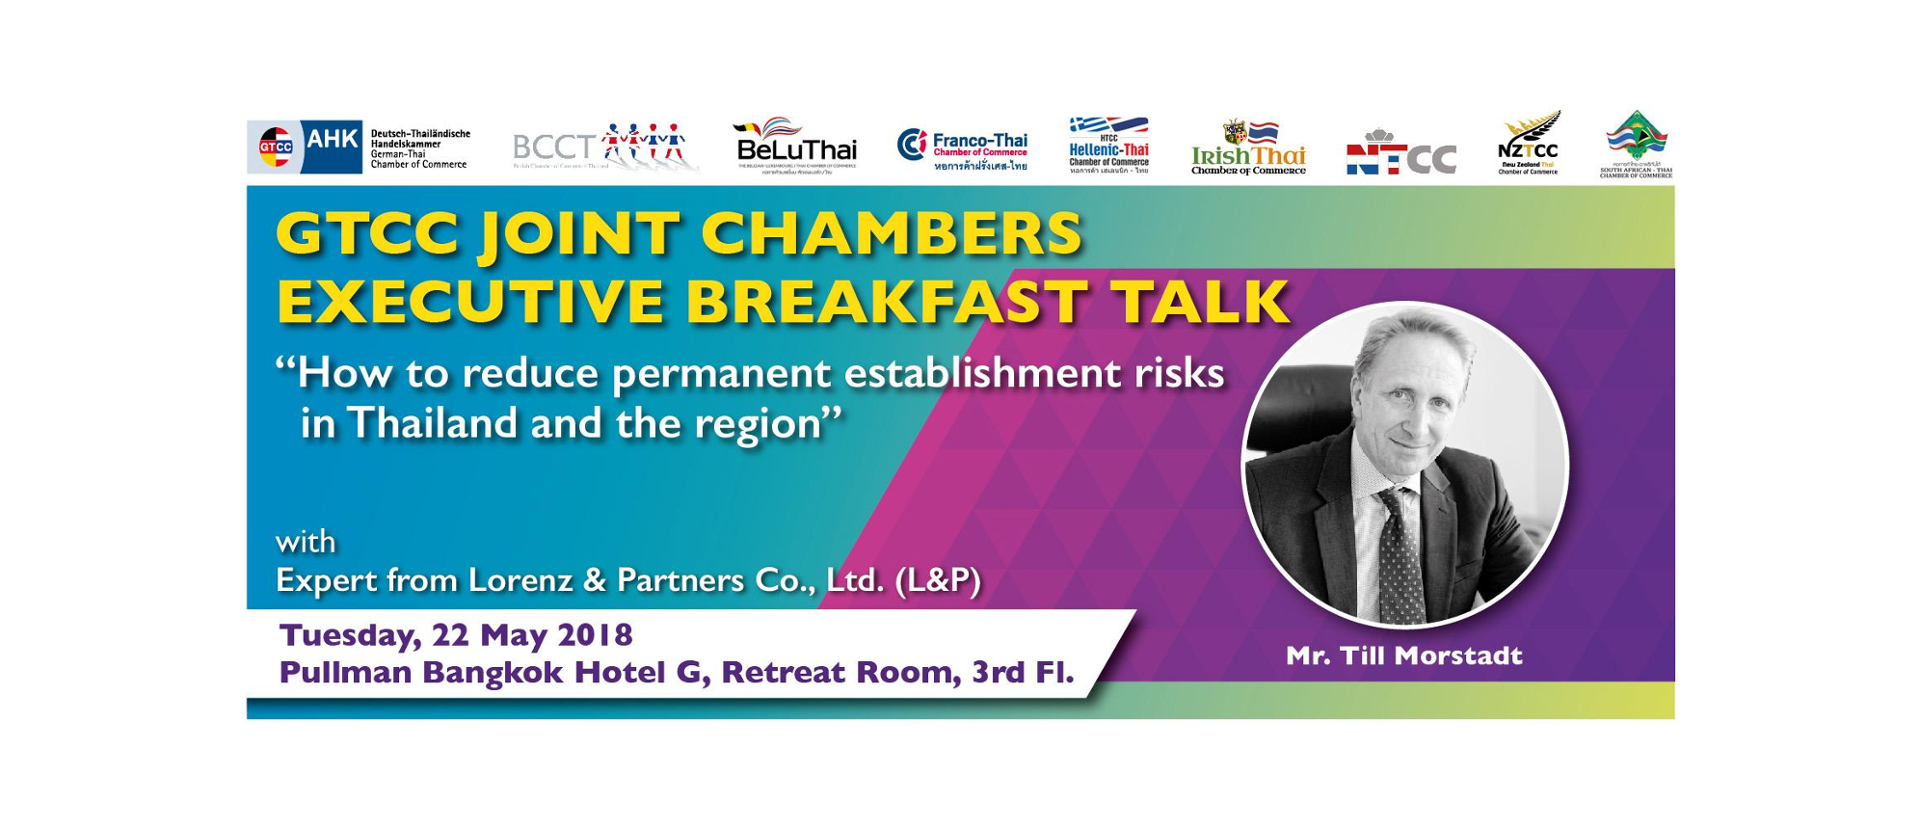 GTCC Joint Chambers Executive Breakfast Talk